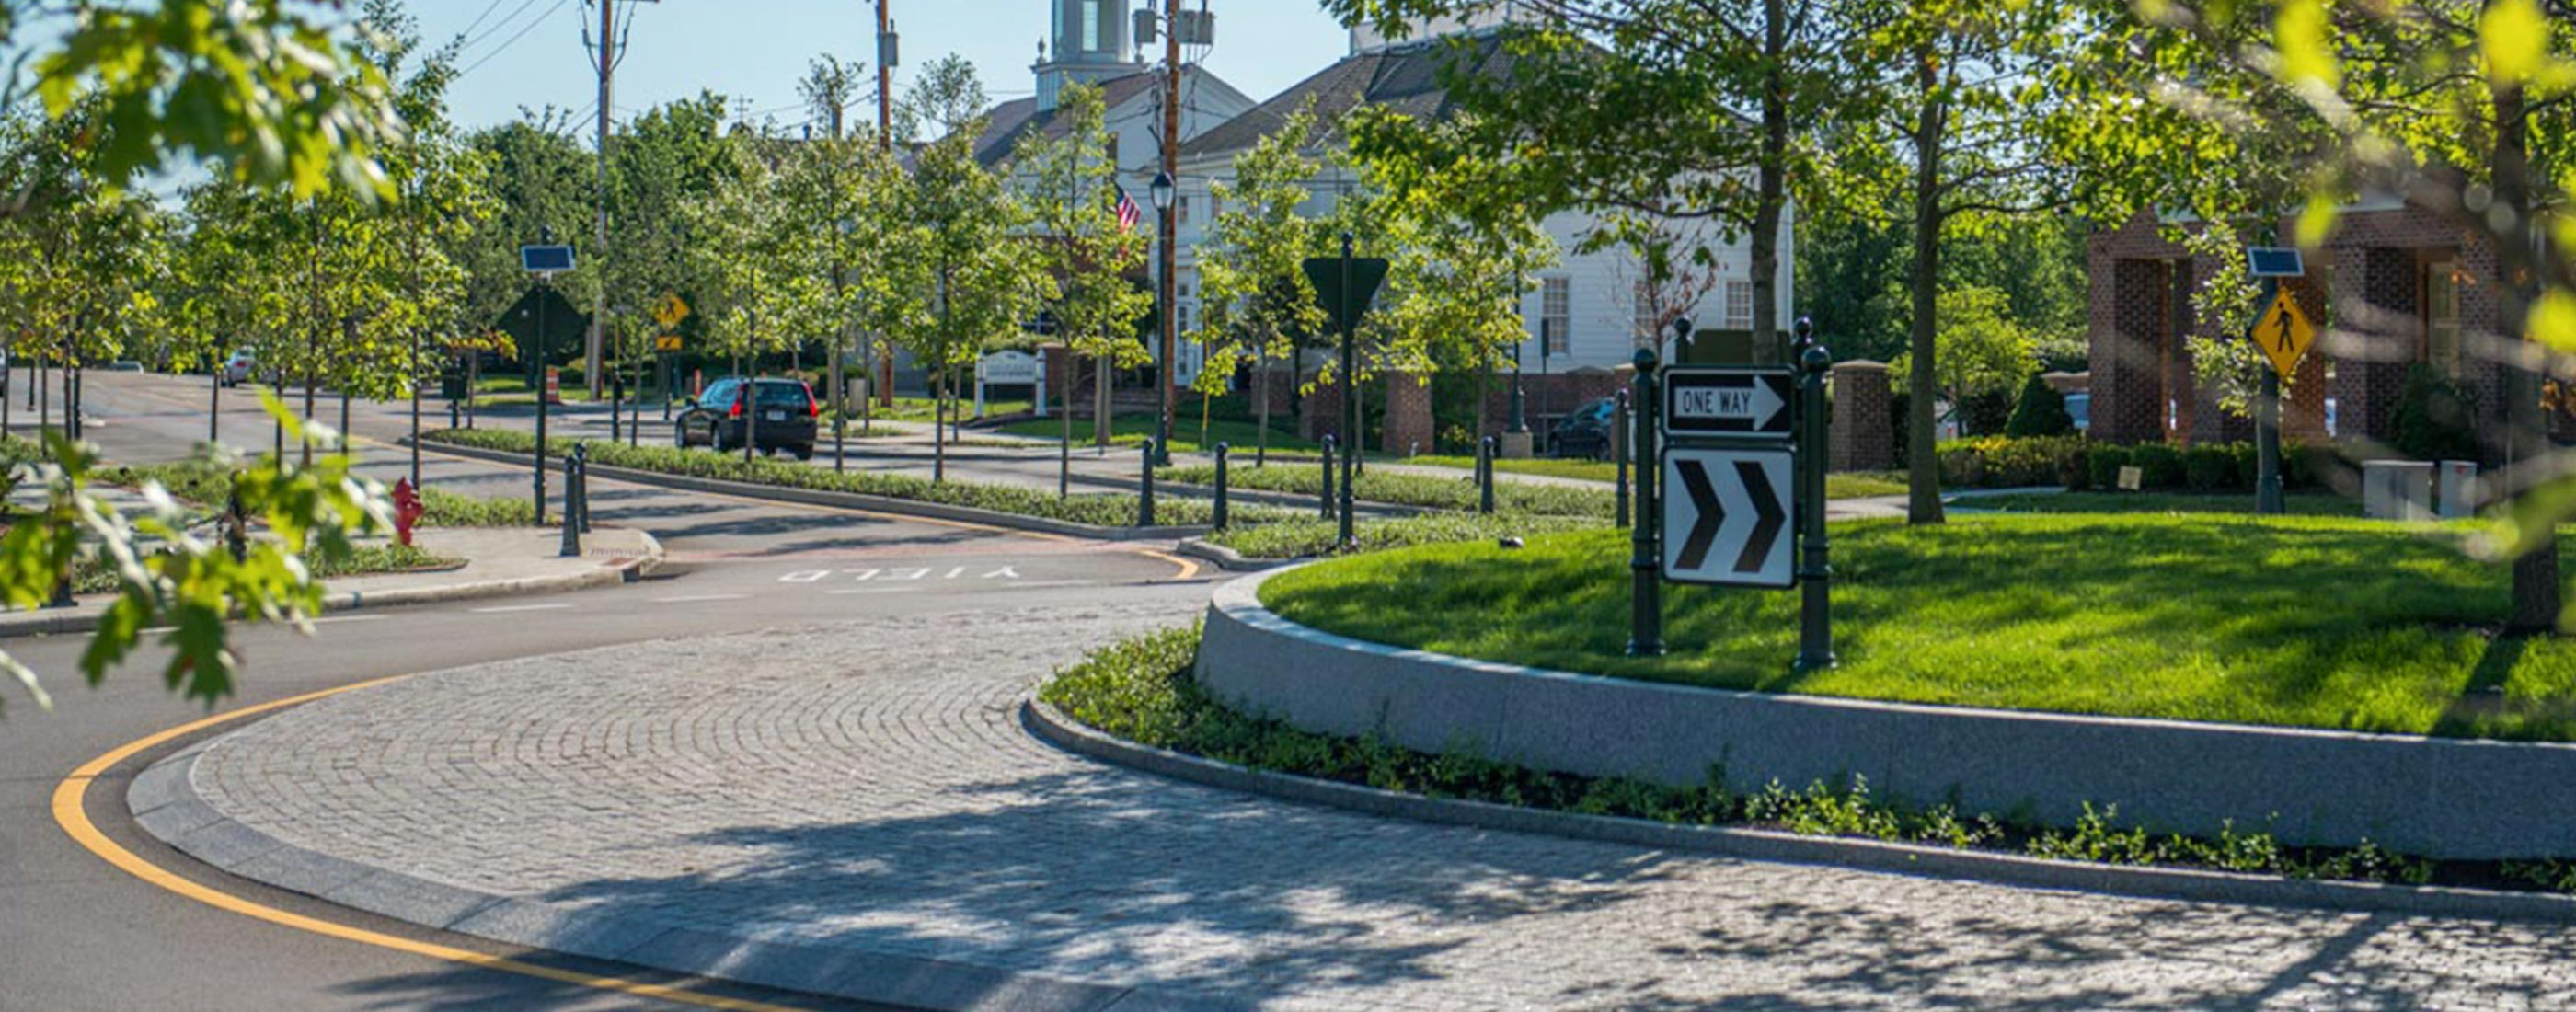 The center of New Albany, Ohio central roundabout, designed by OHM Advisors, is anchored by trees and a low granite wall.